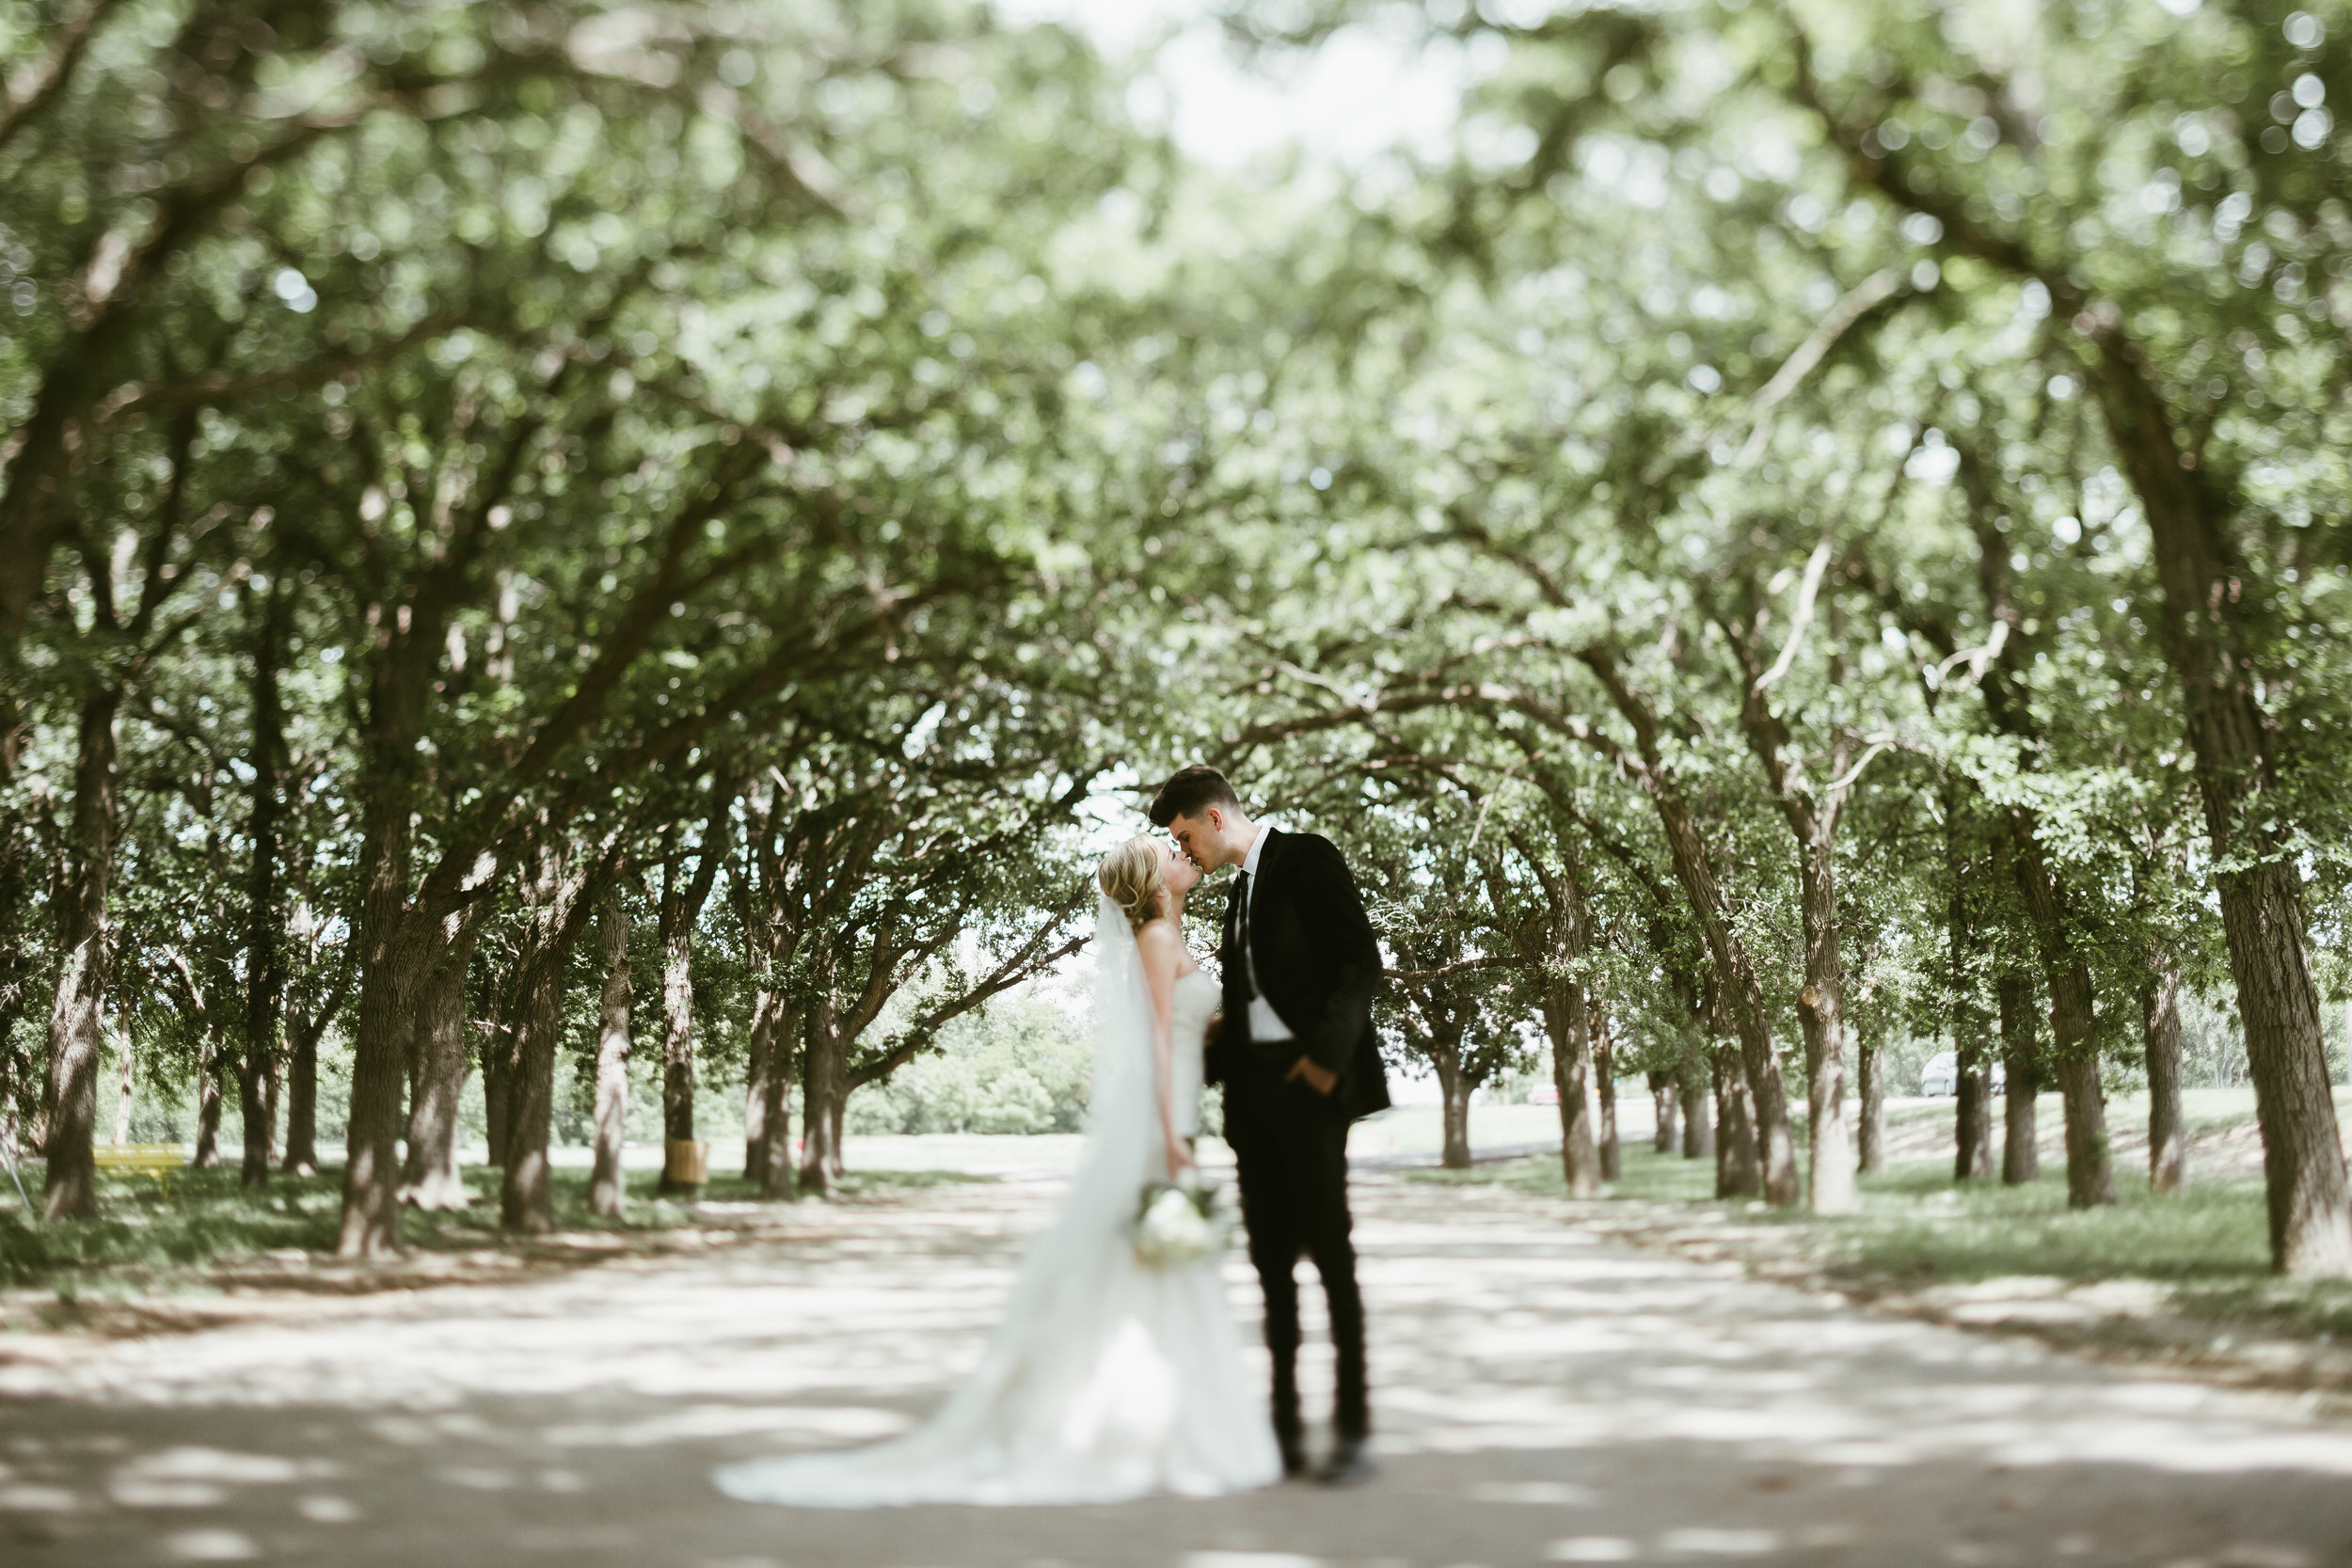 Megan&JaredMarried-218.jpg